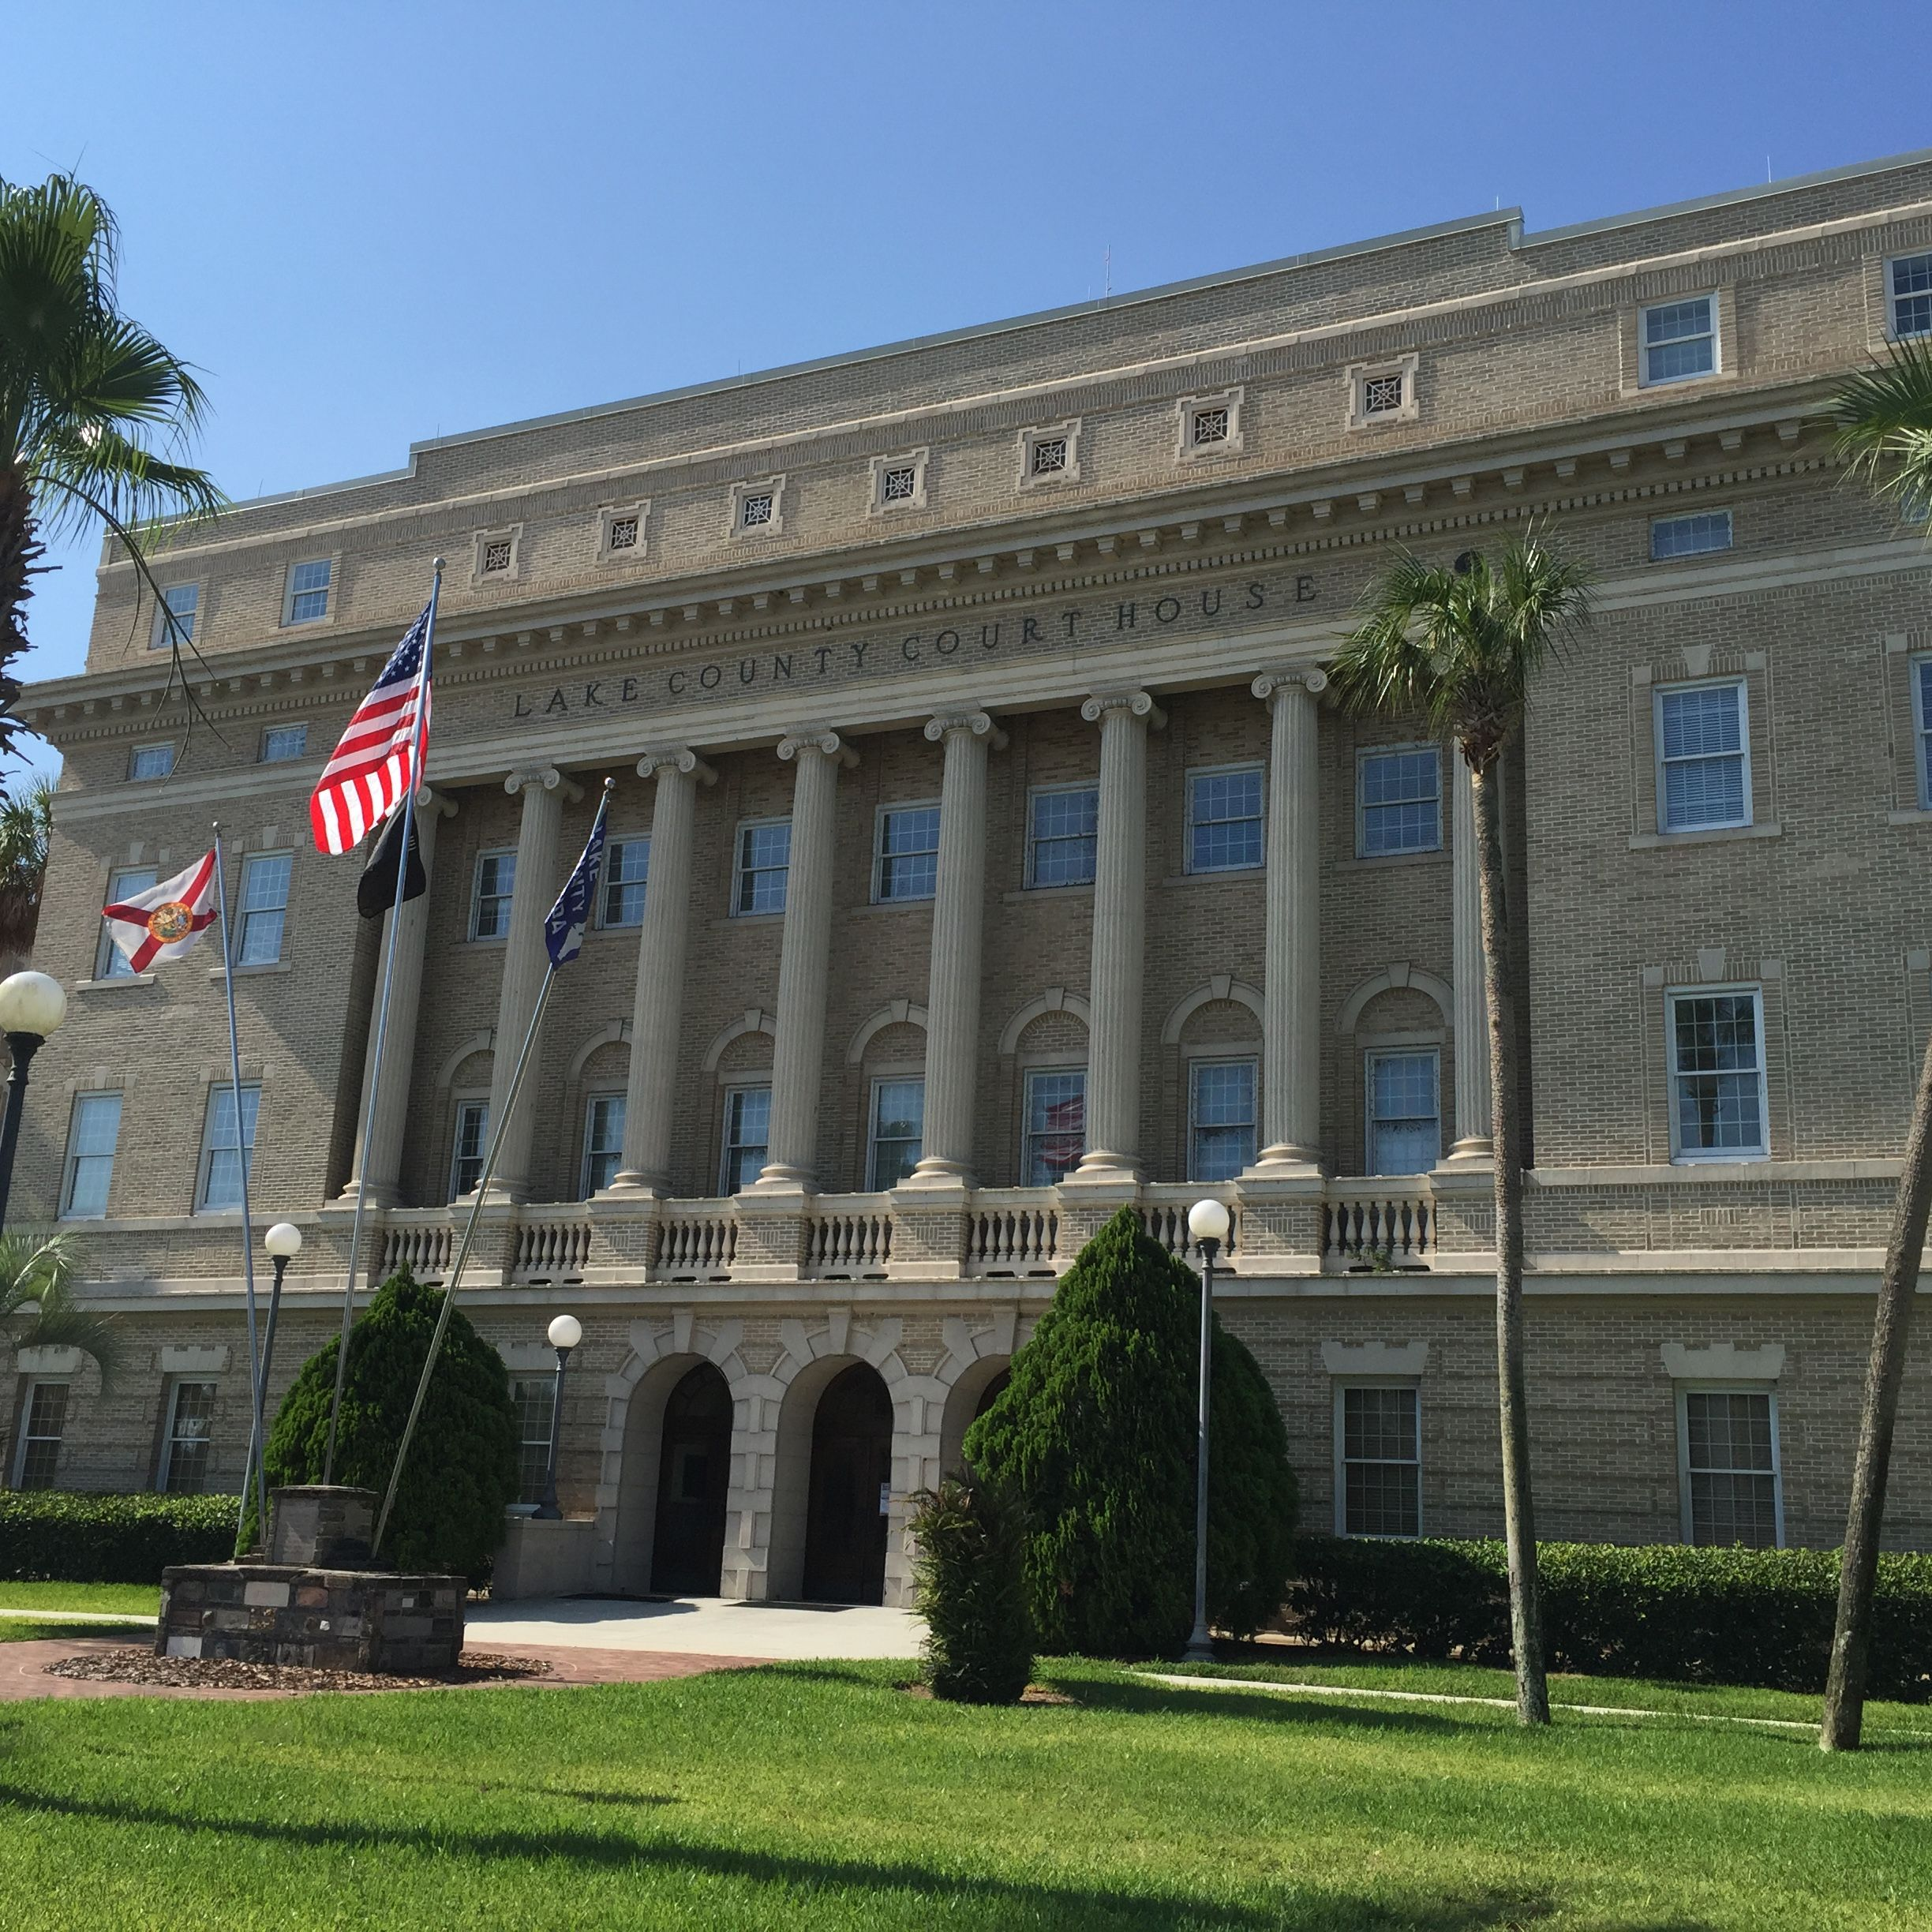 Old Lake County Courthouse in Tavares, Florida. Built in